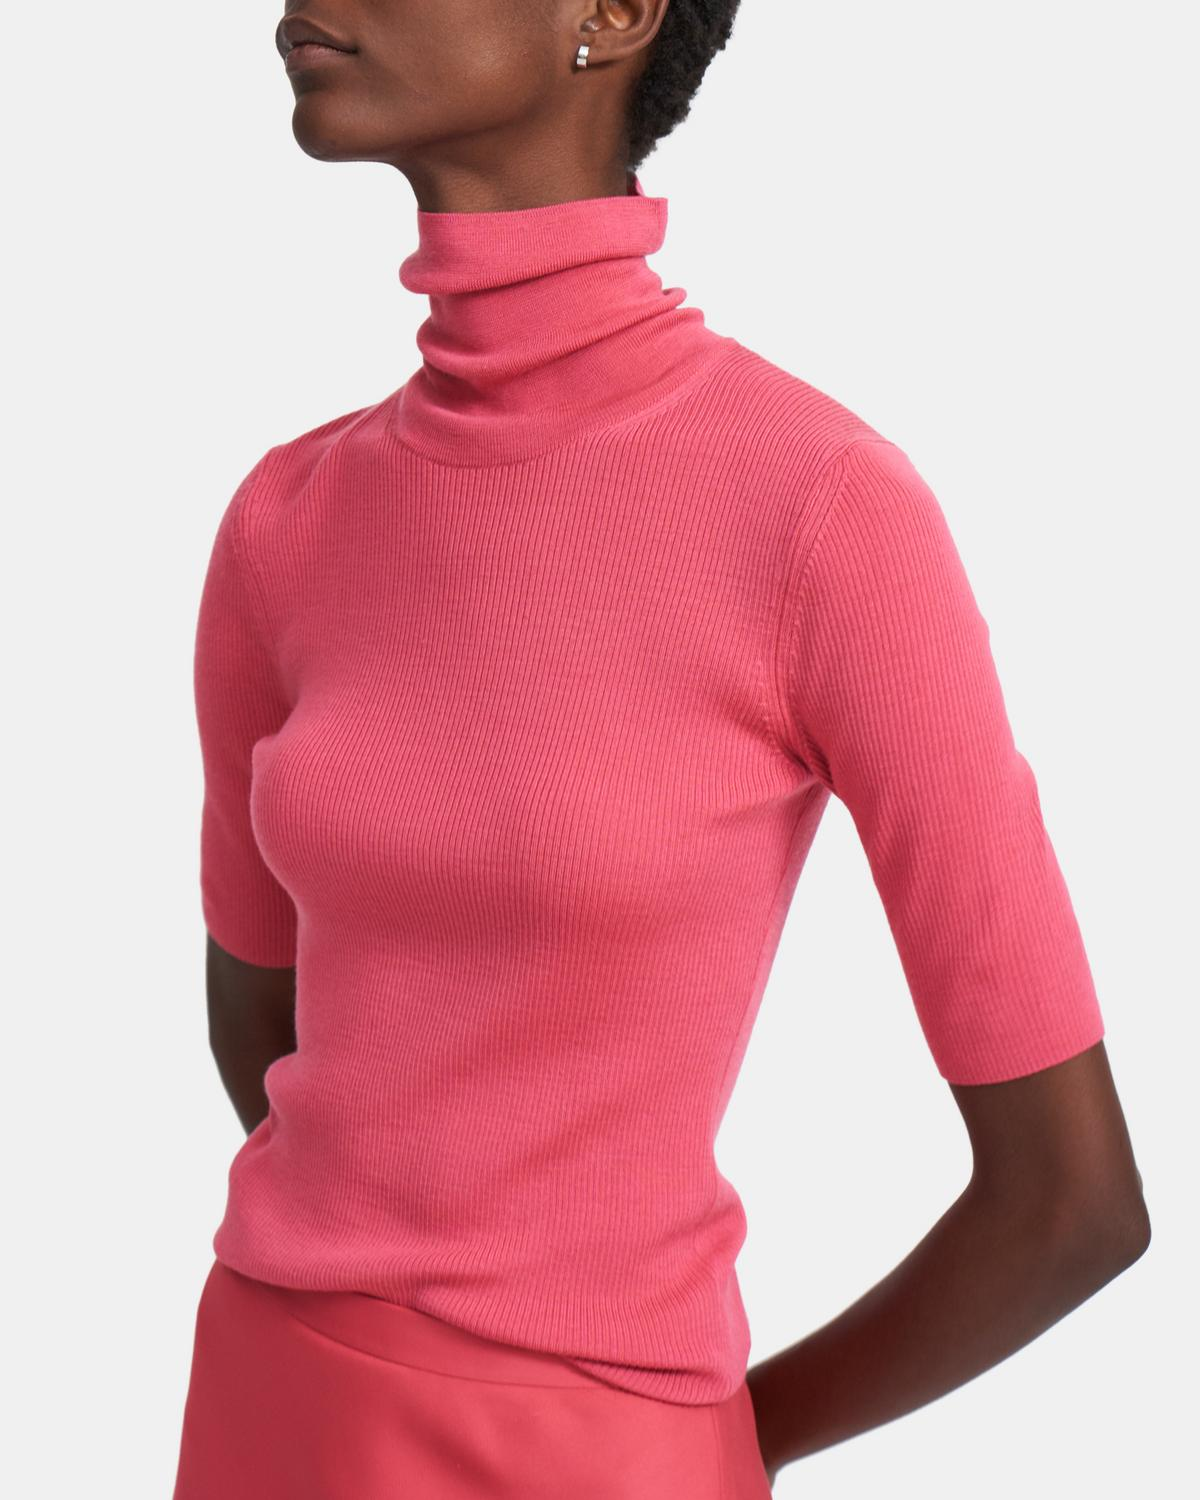 Short-Sleeve Turtleneck Sweater in Regal Wool